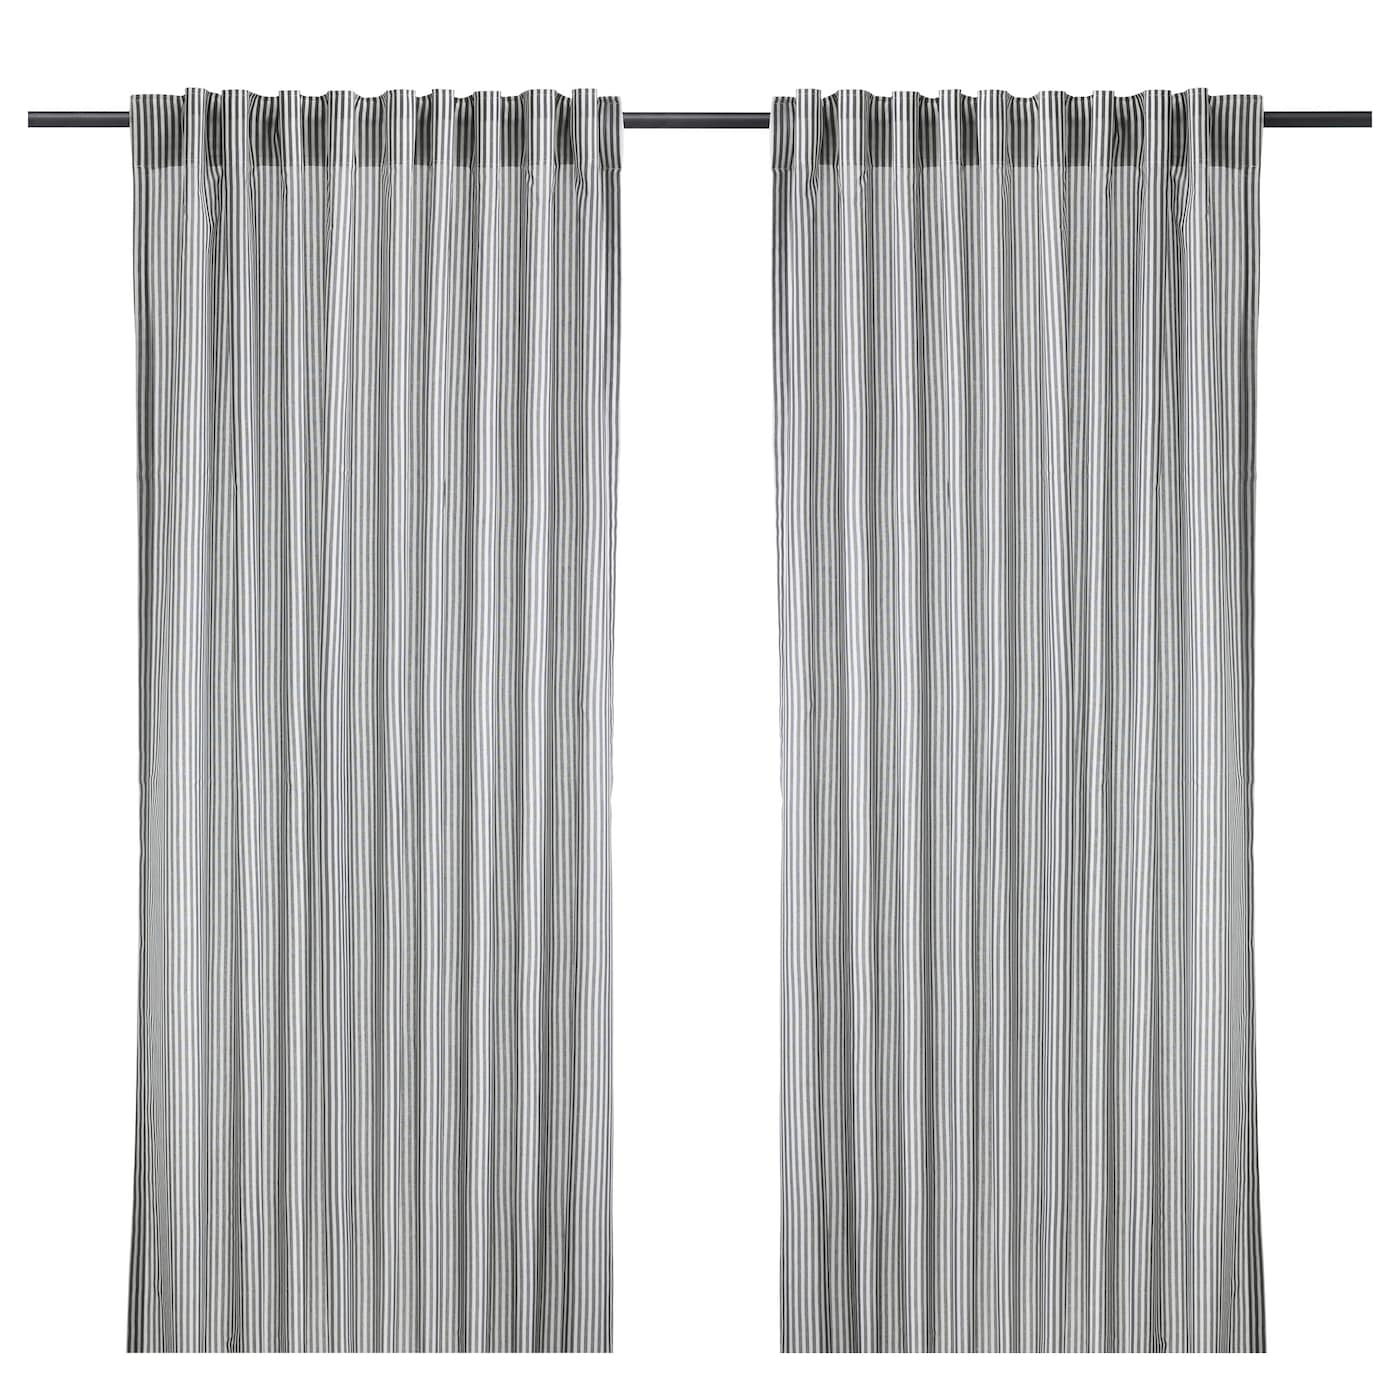 Gulsporre curtains 1 pair white grey 145x250 cm ikea for White curtains ikea